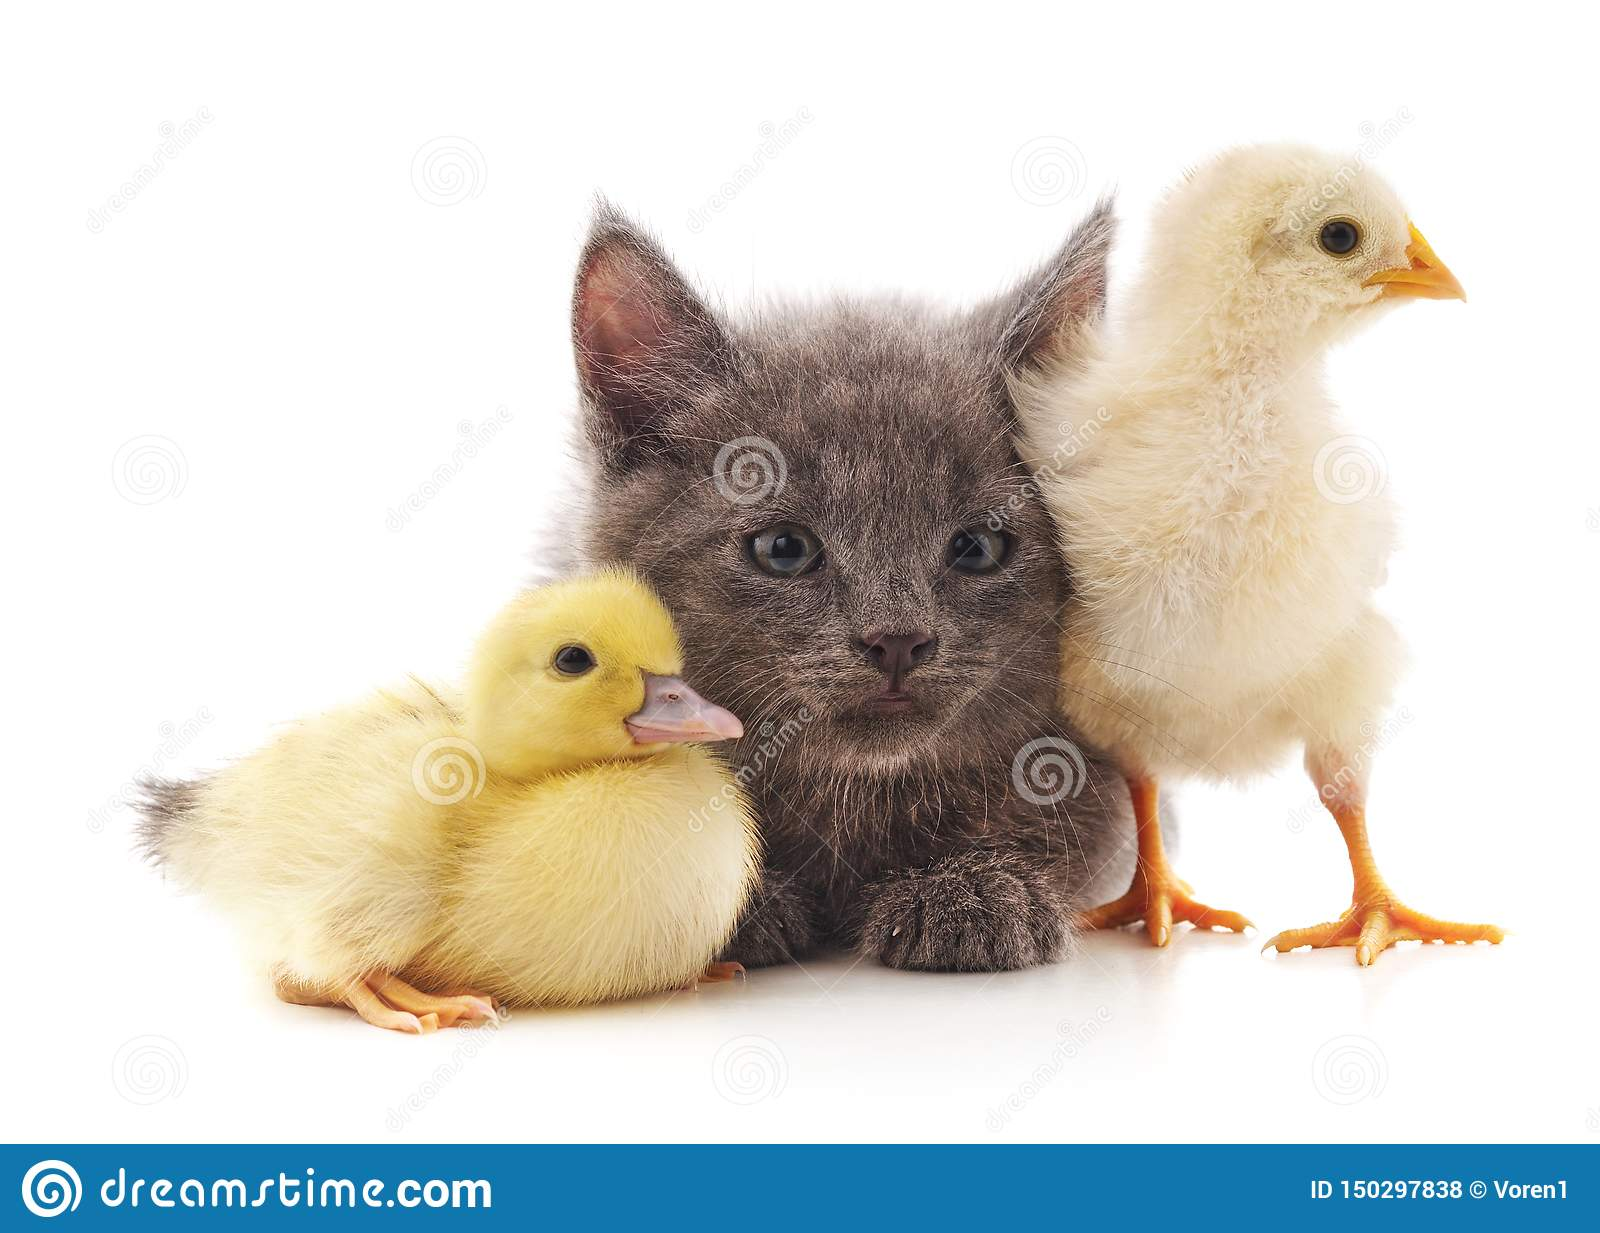 Kitty chicken and duck